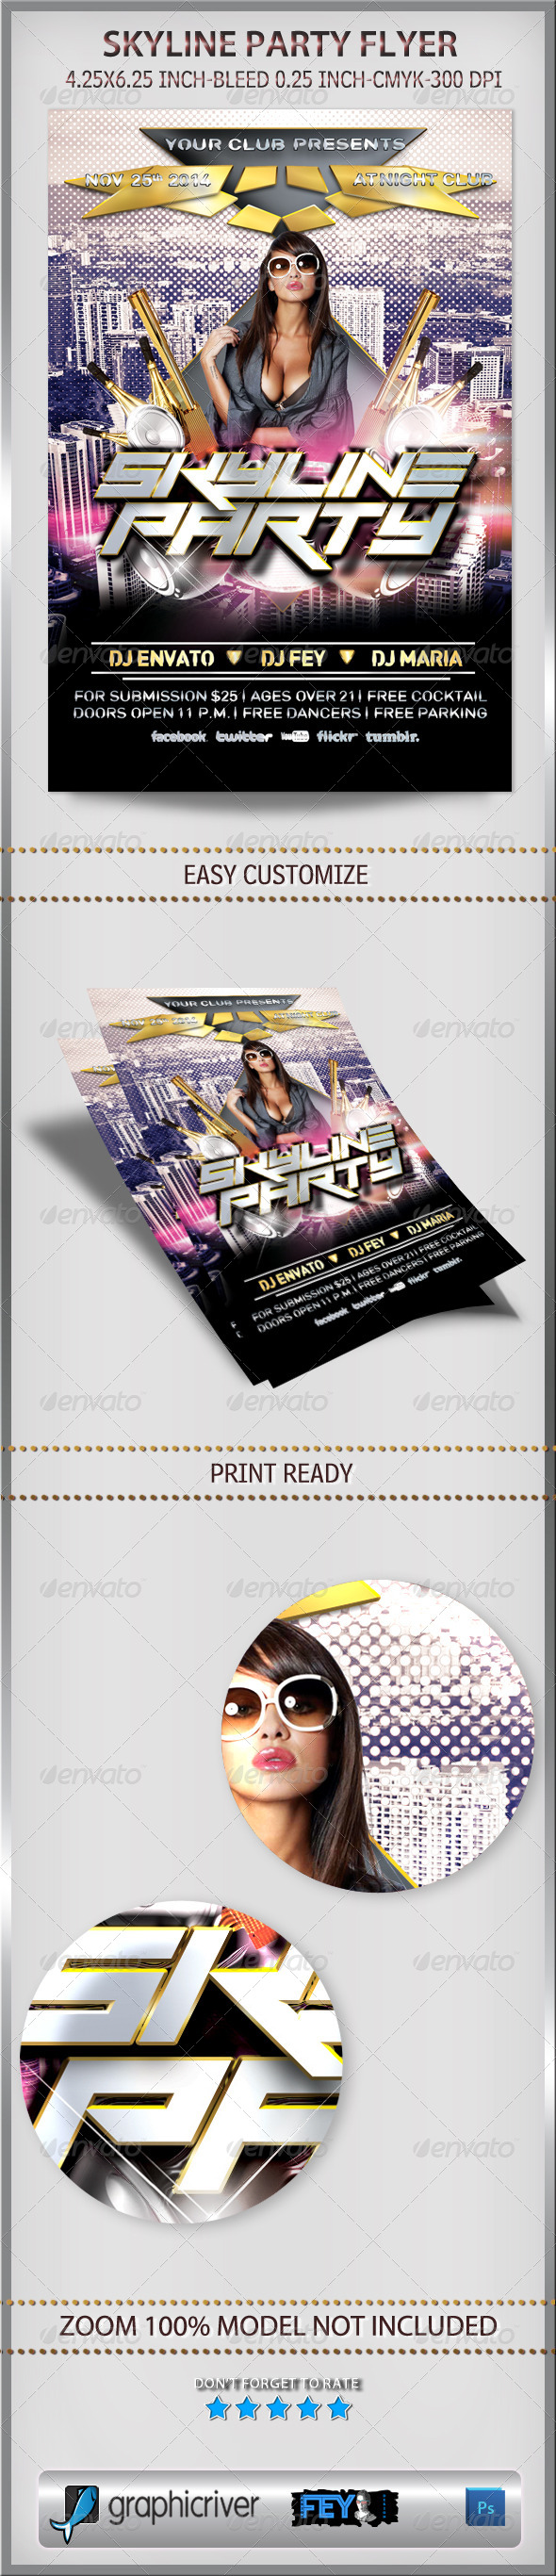 Skyline Party Flyer - Events Flyers